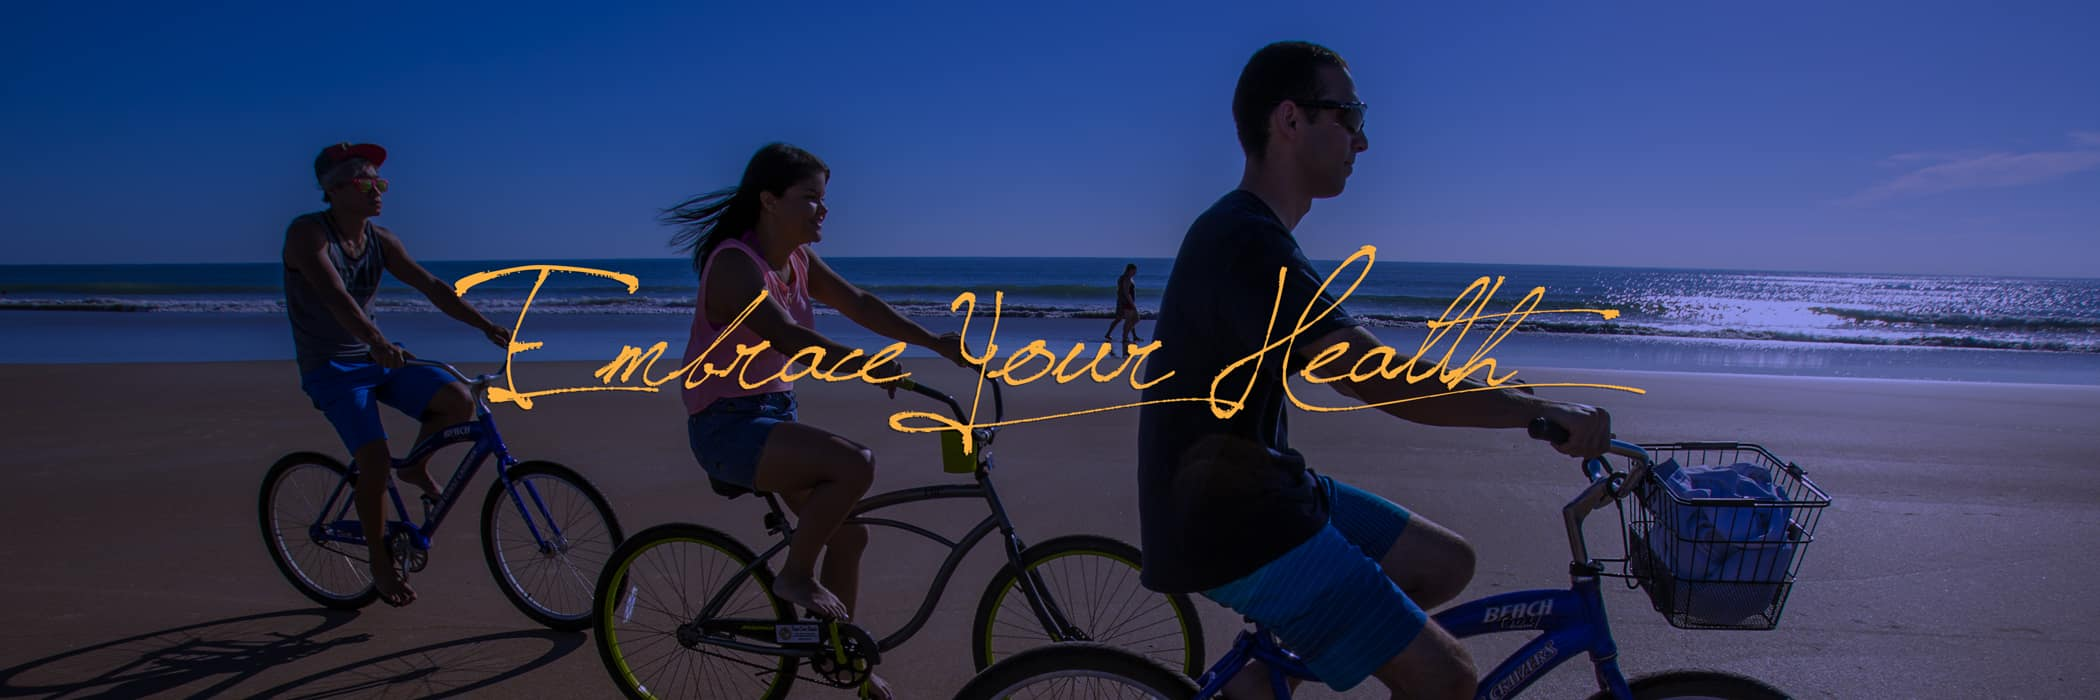 Students riding bicycles on the beach with the text, 'Embrace your health,' on top.